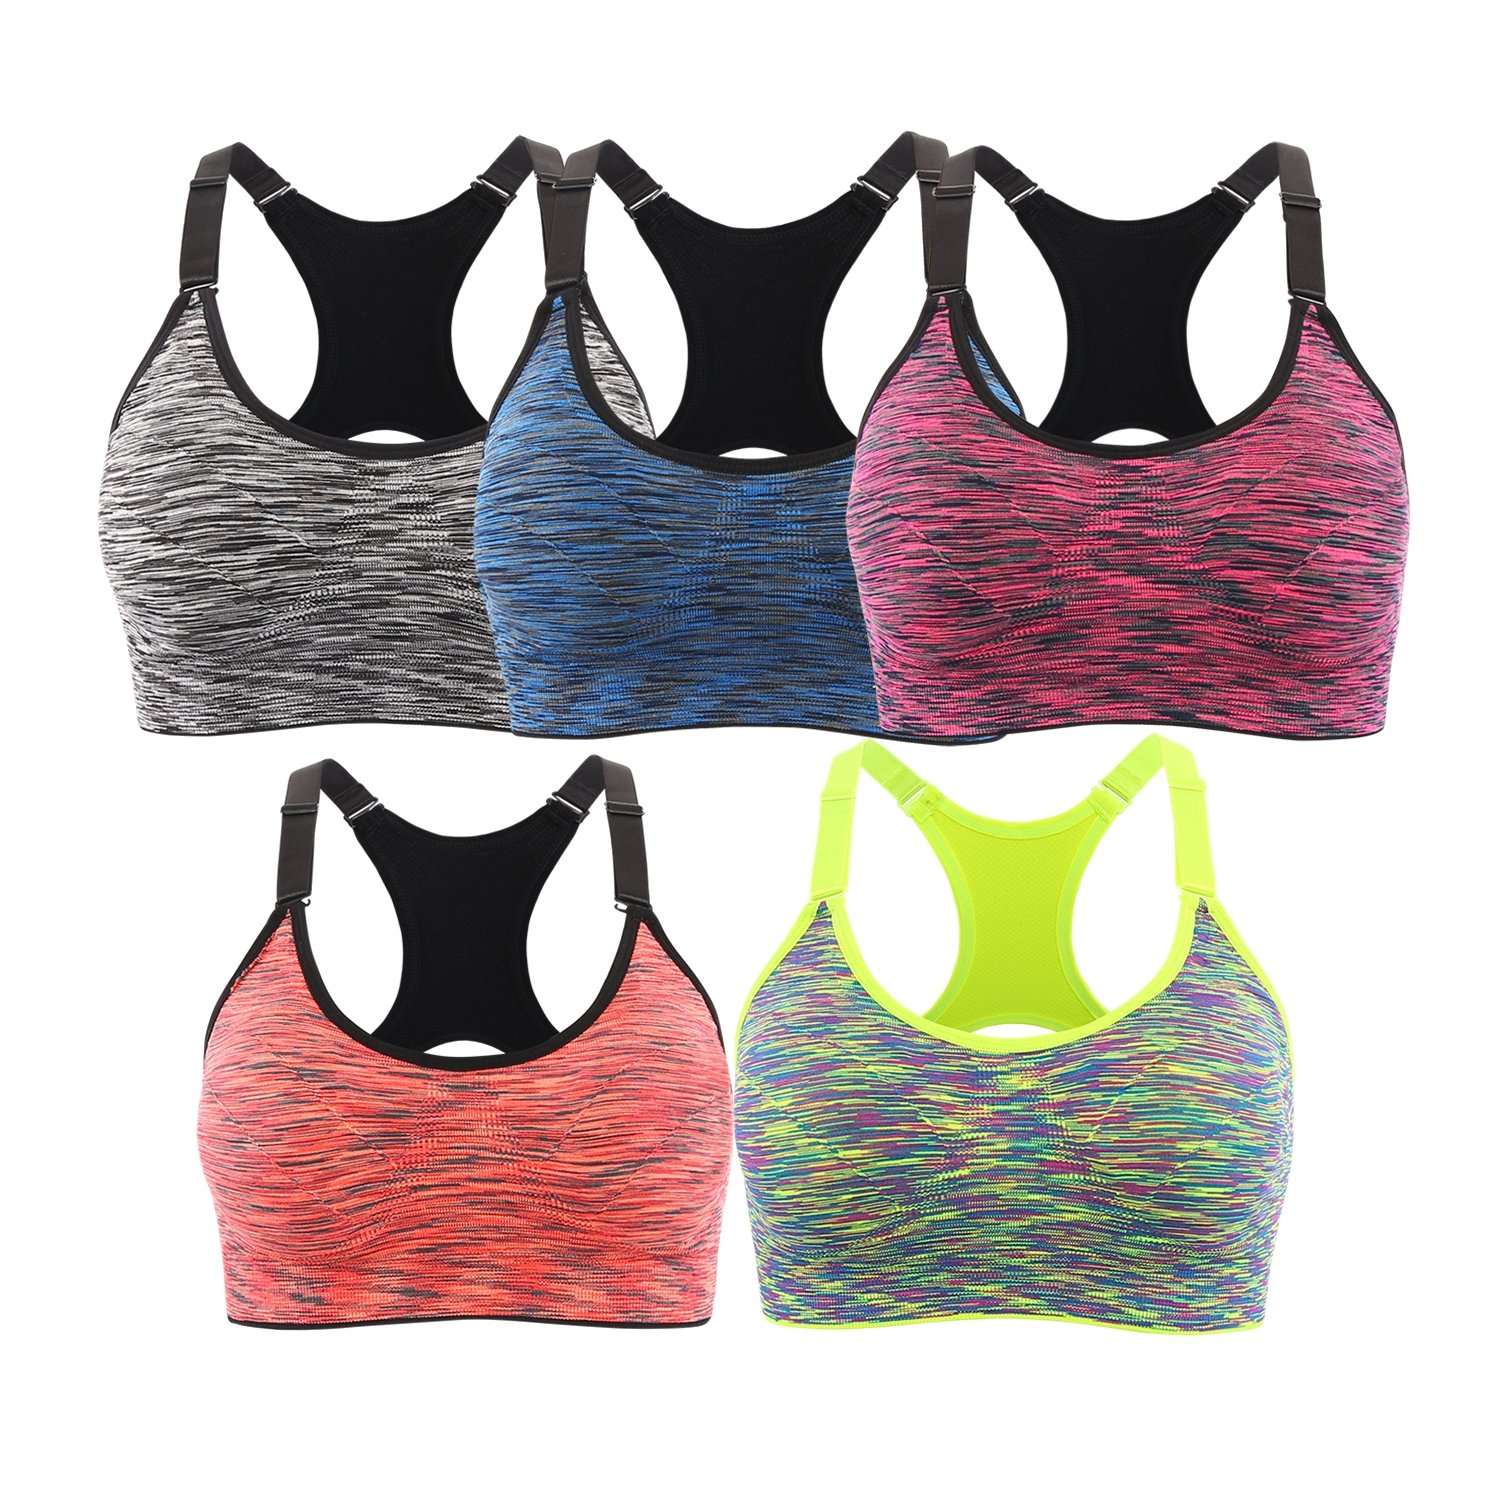 EMY Sports Bra 5 Pack Cami Space Dye Seamless Wirefree Stretchy Removable Pads for Fitness Gym Yoga Running (L, 5 Pack) by EMY